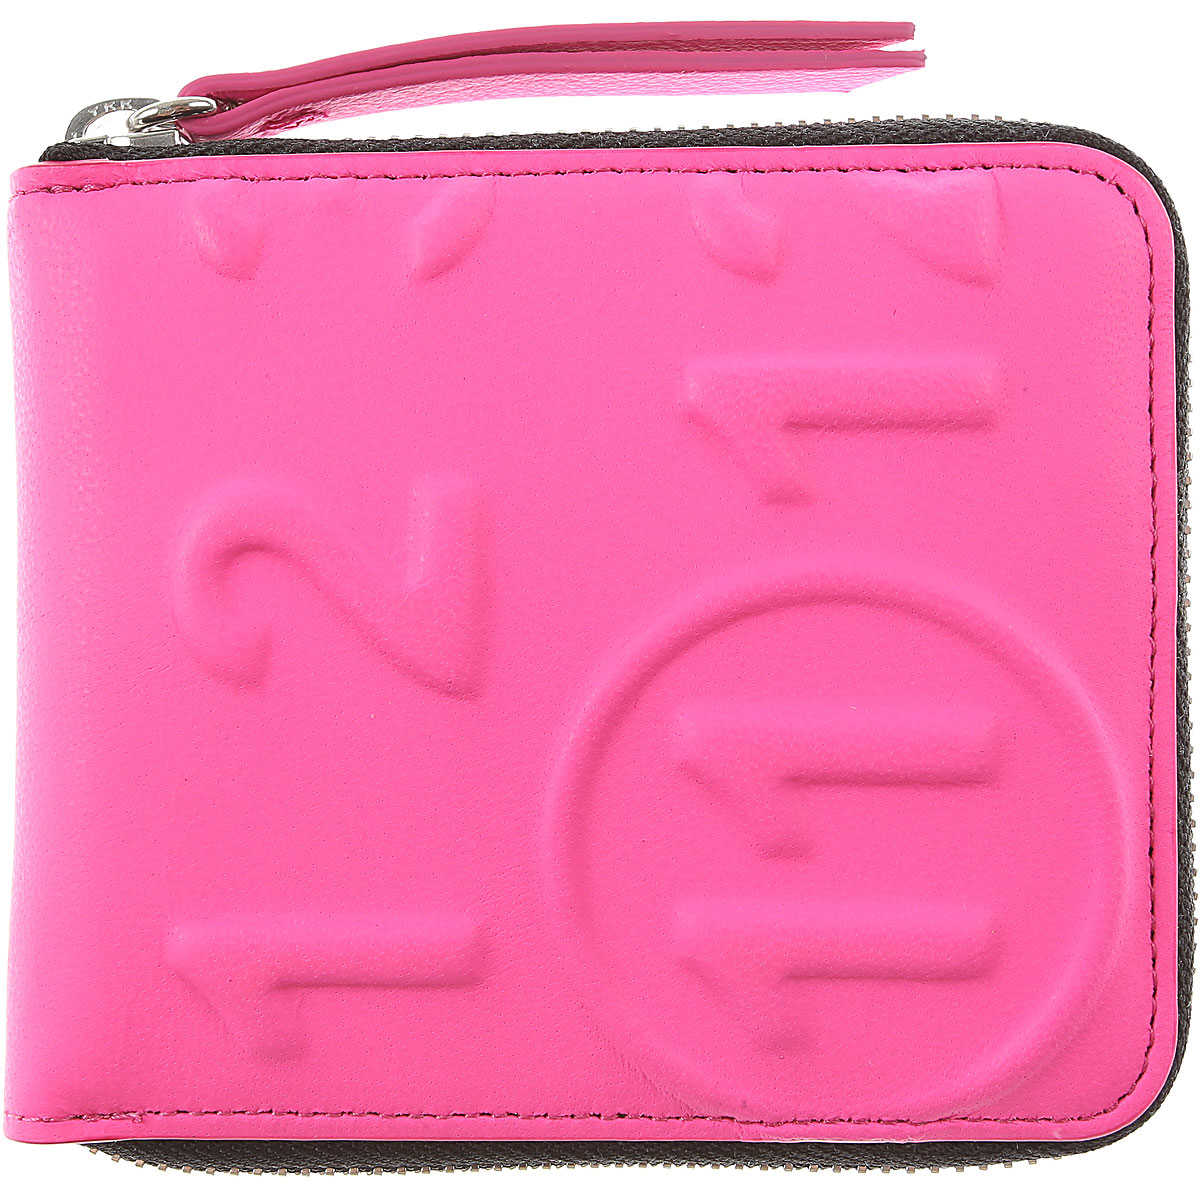 Maison Martin Margiela Wallet for Men On Sale Fuchsia SE - GOOFASH